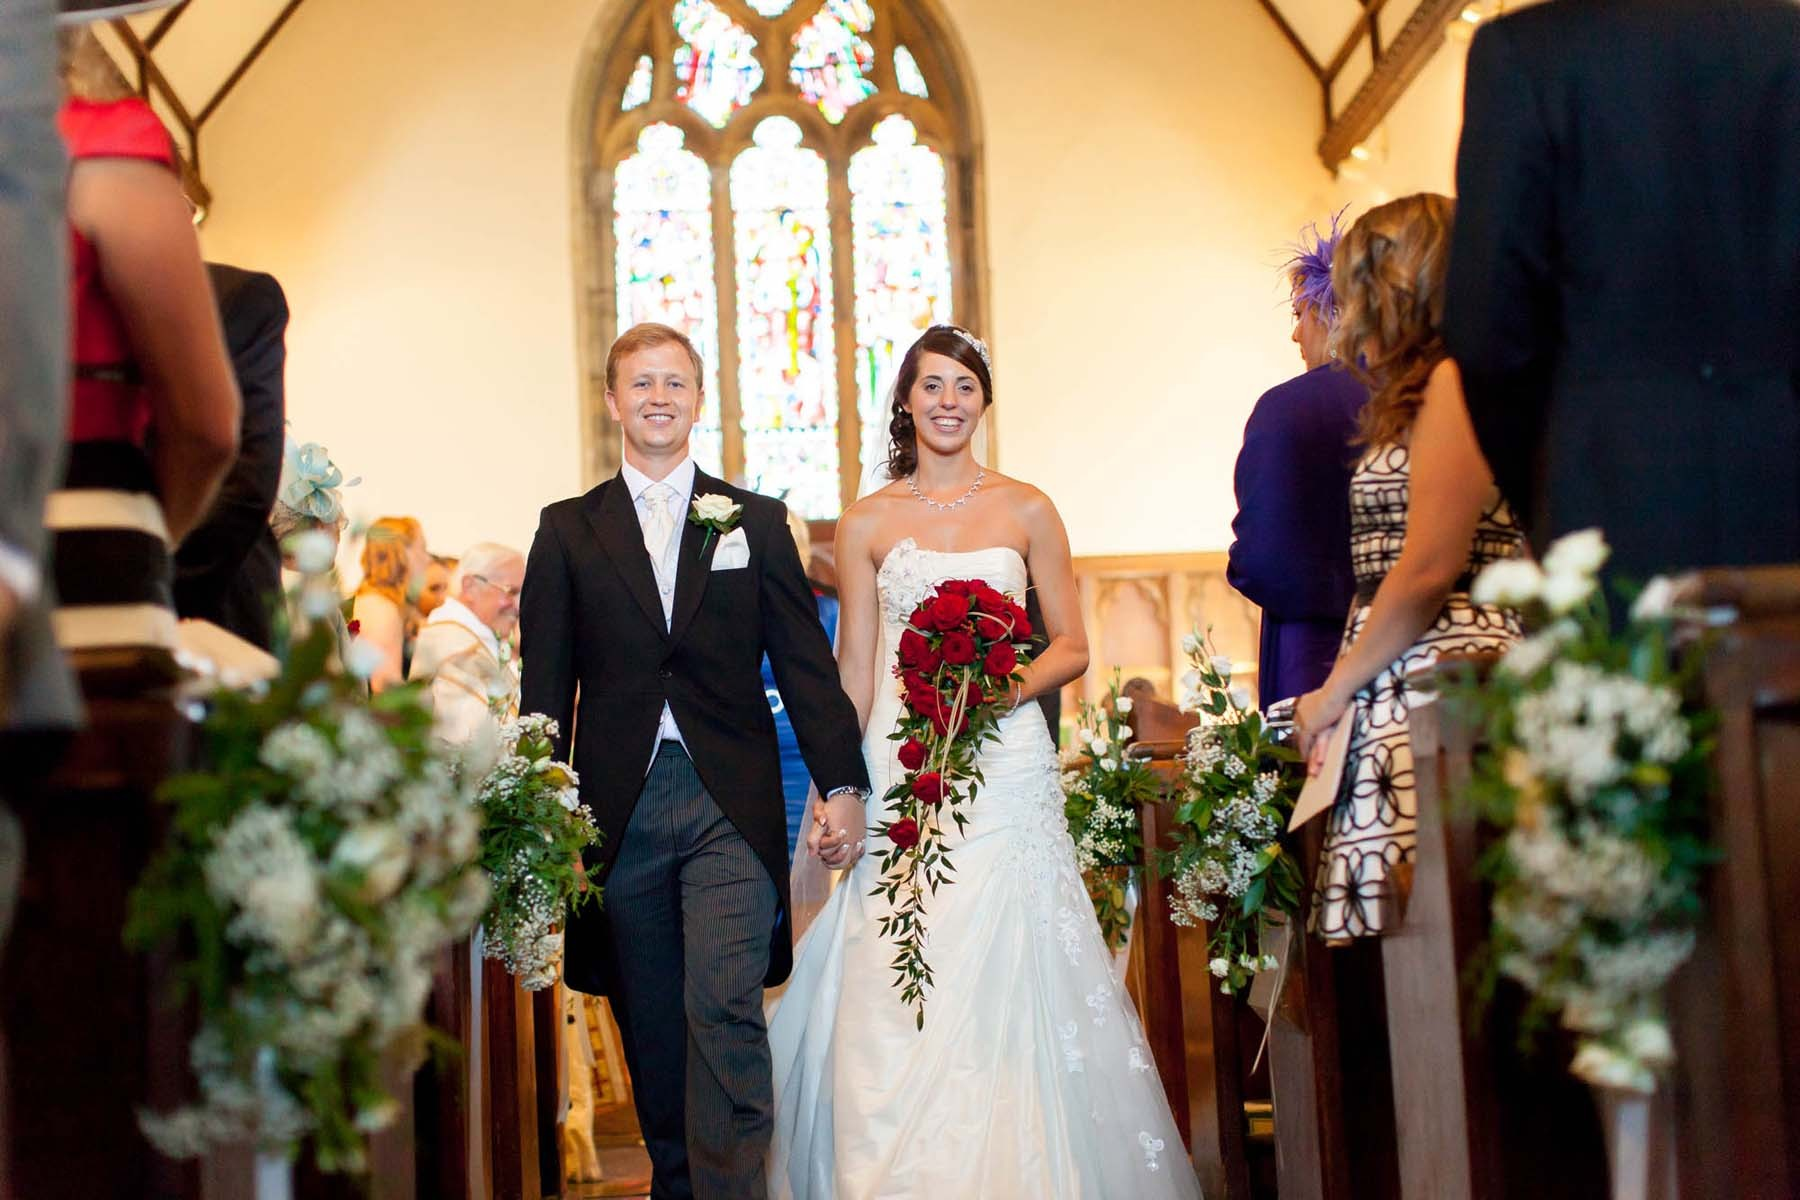 Sussex & Surrey Wedding Photographer - Ceremony (21)